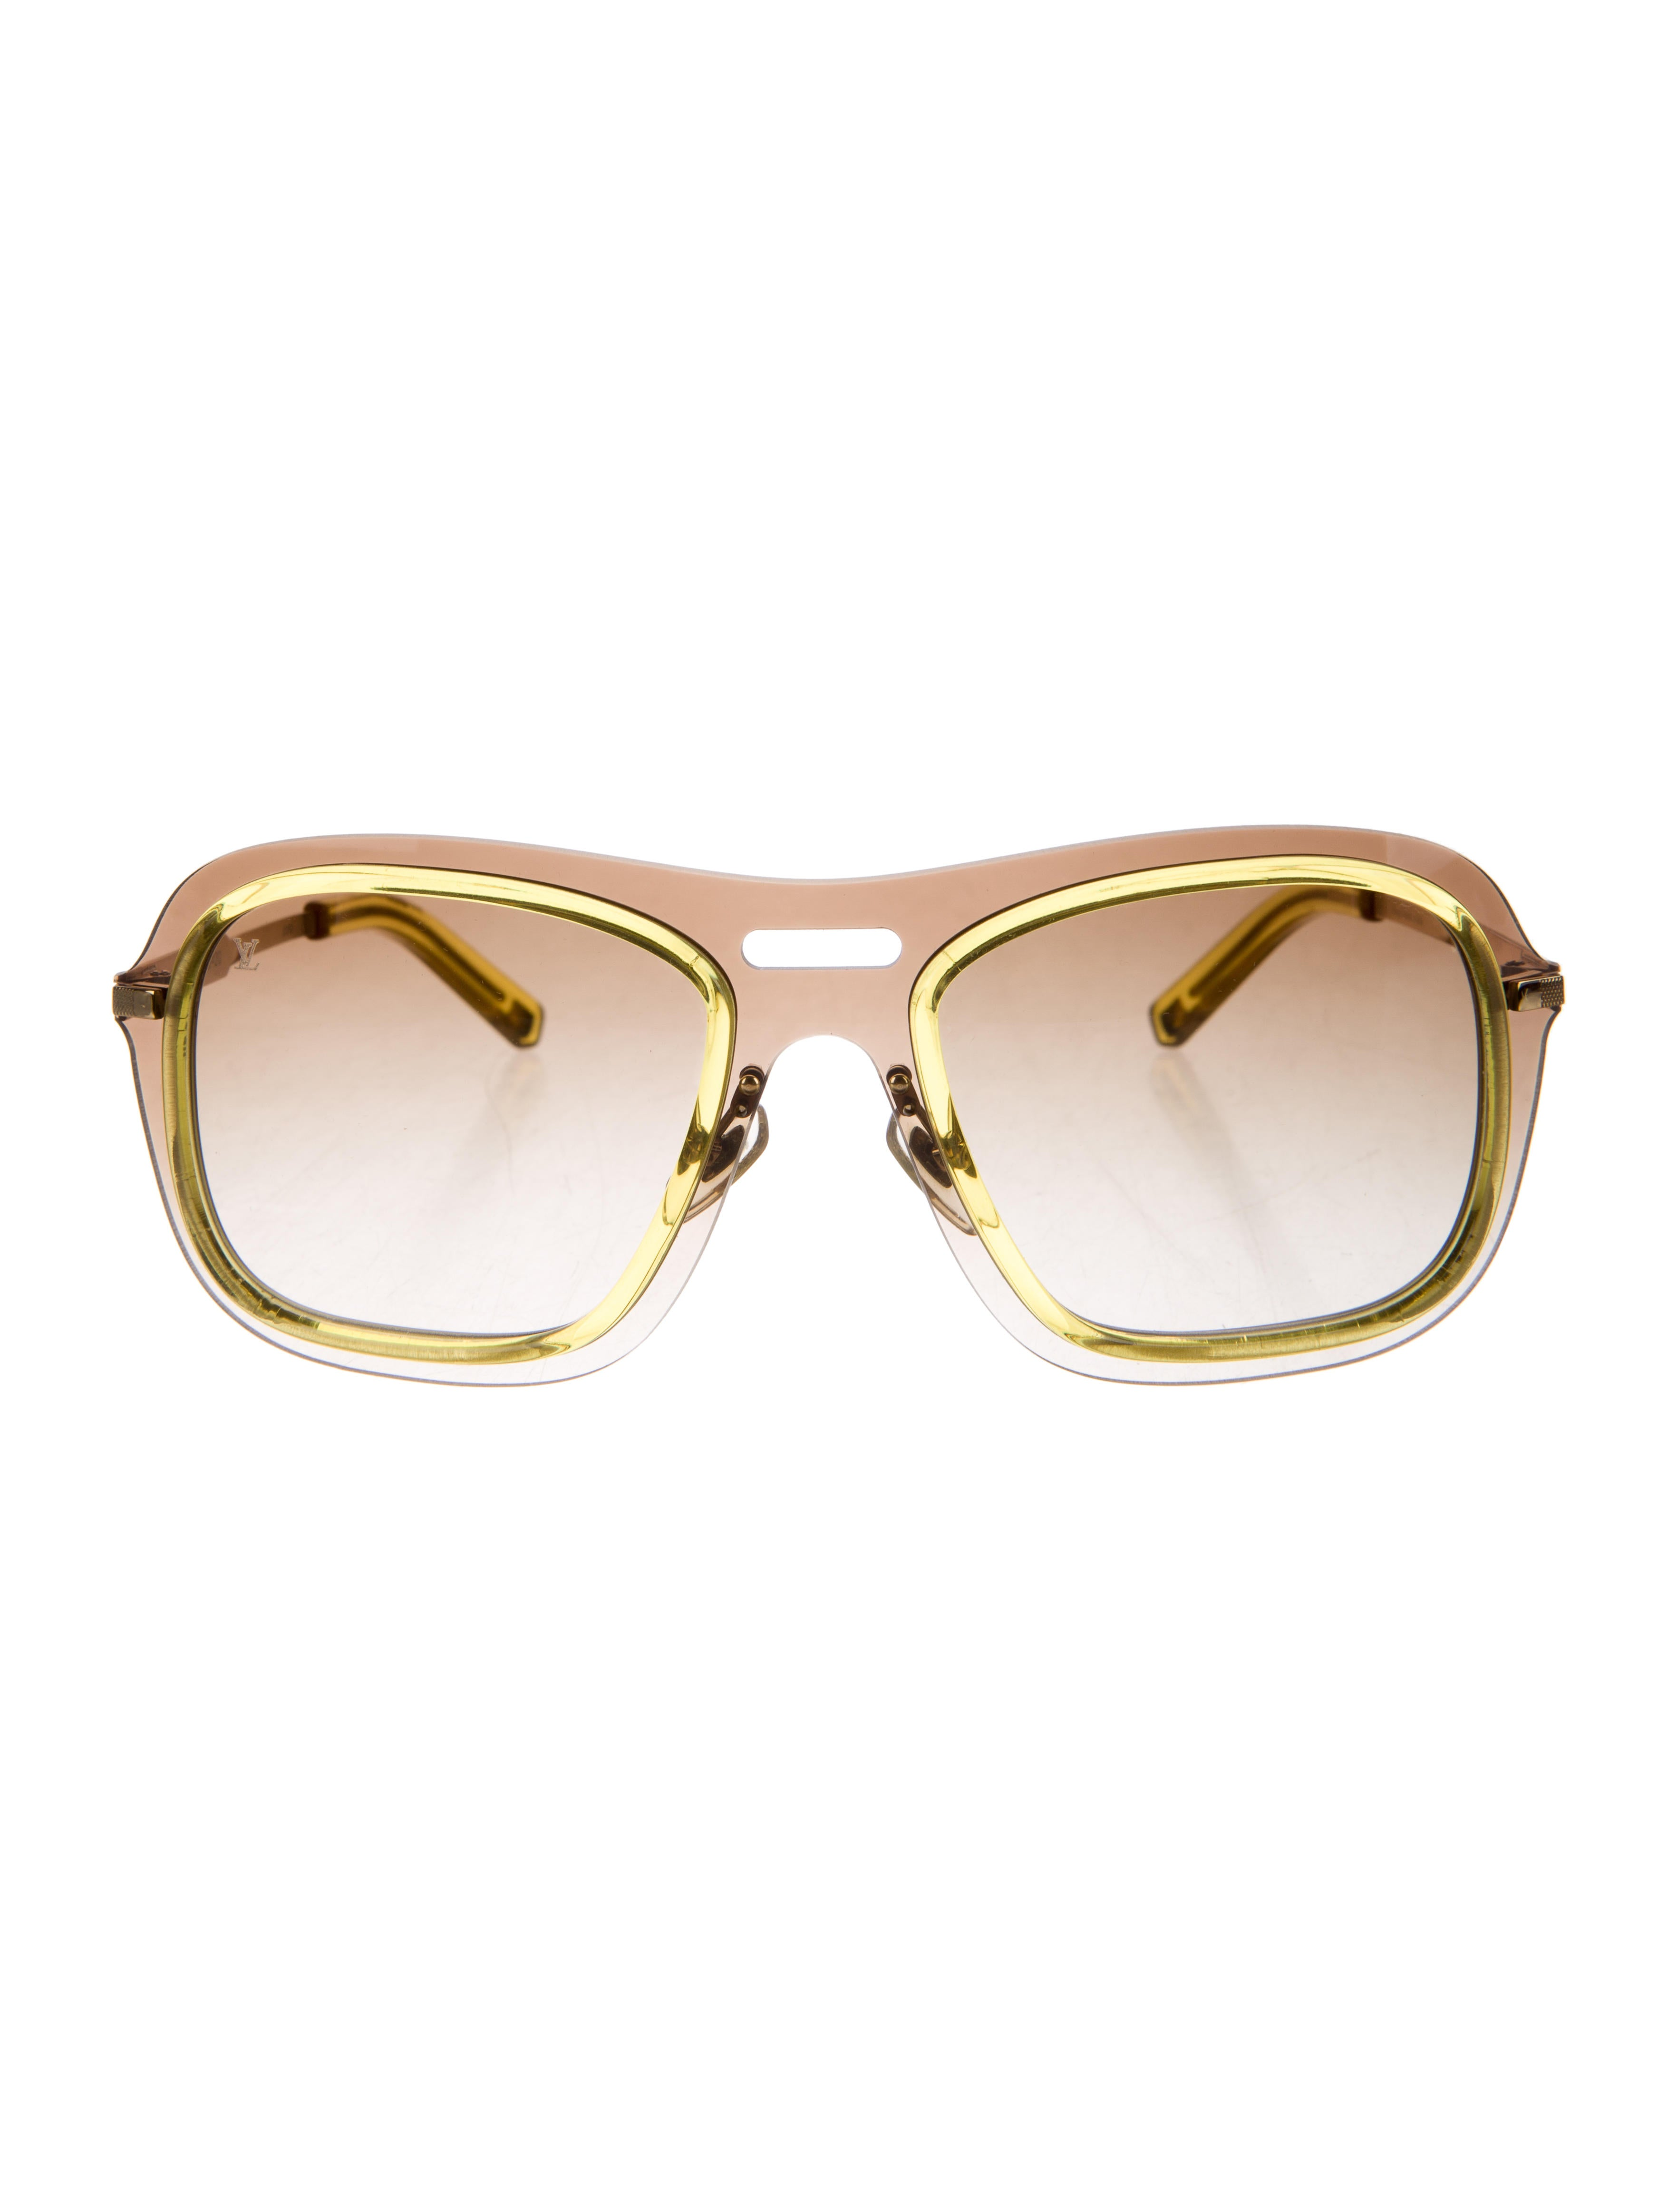 0ce47889d4 Louis Vuitton Gradient Impulsion Sunglasses - Accessories - LOU119901